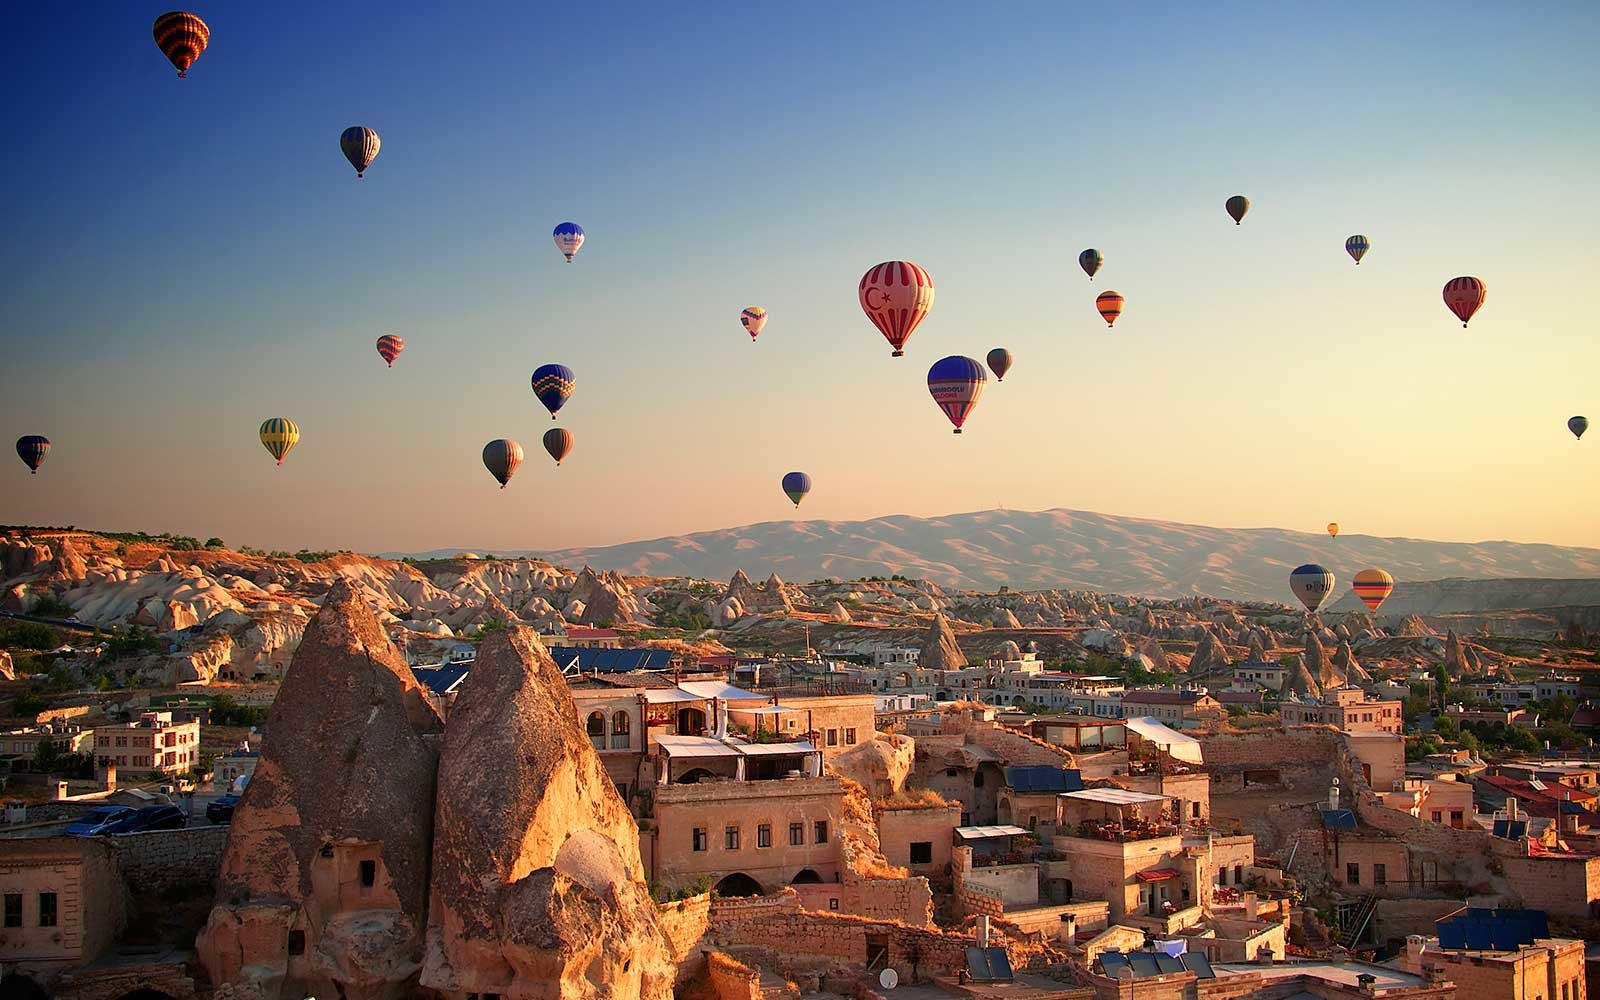 Sunrise in Cappadocia, Turkey, with balloons and typical fairy chimney.